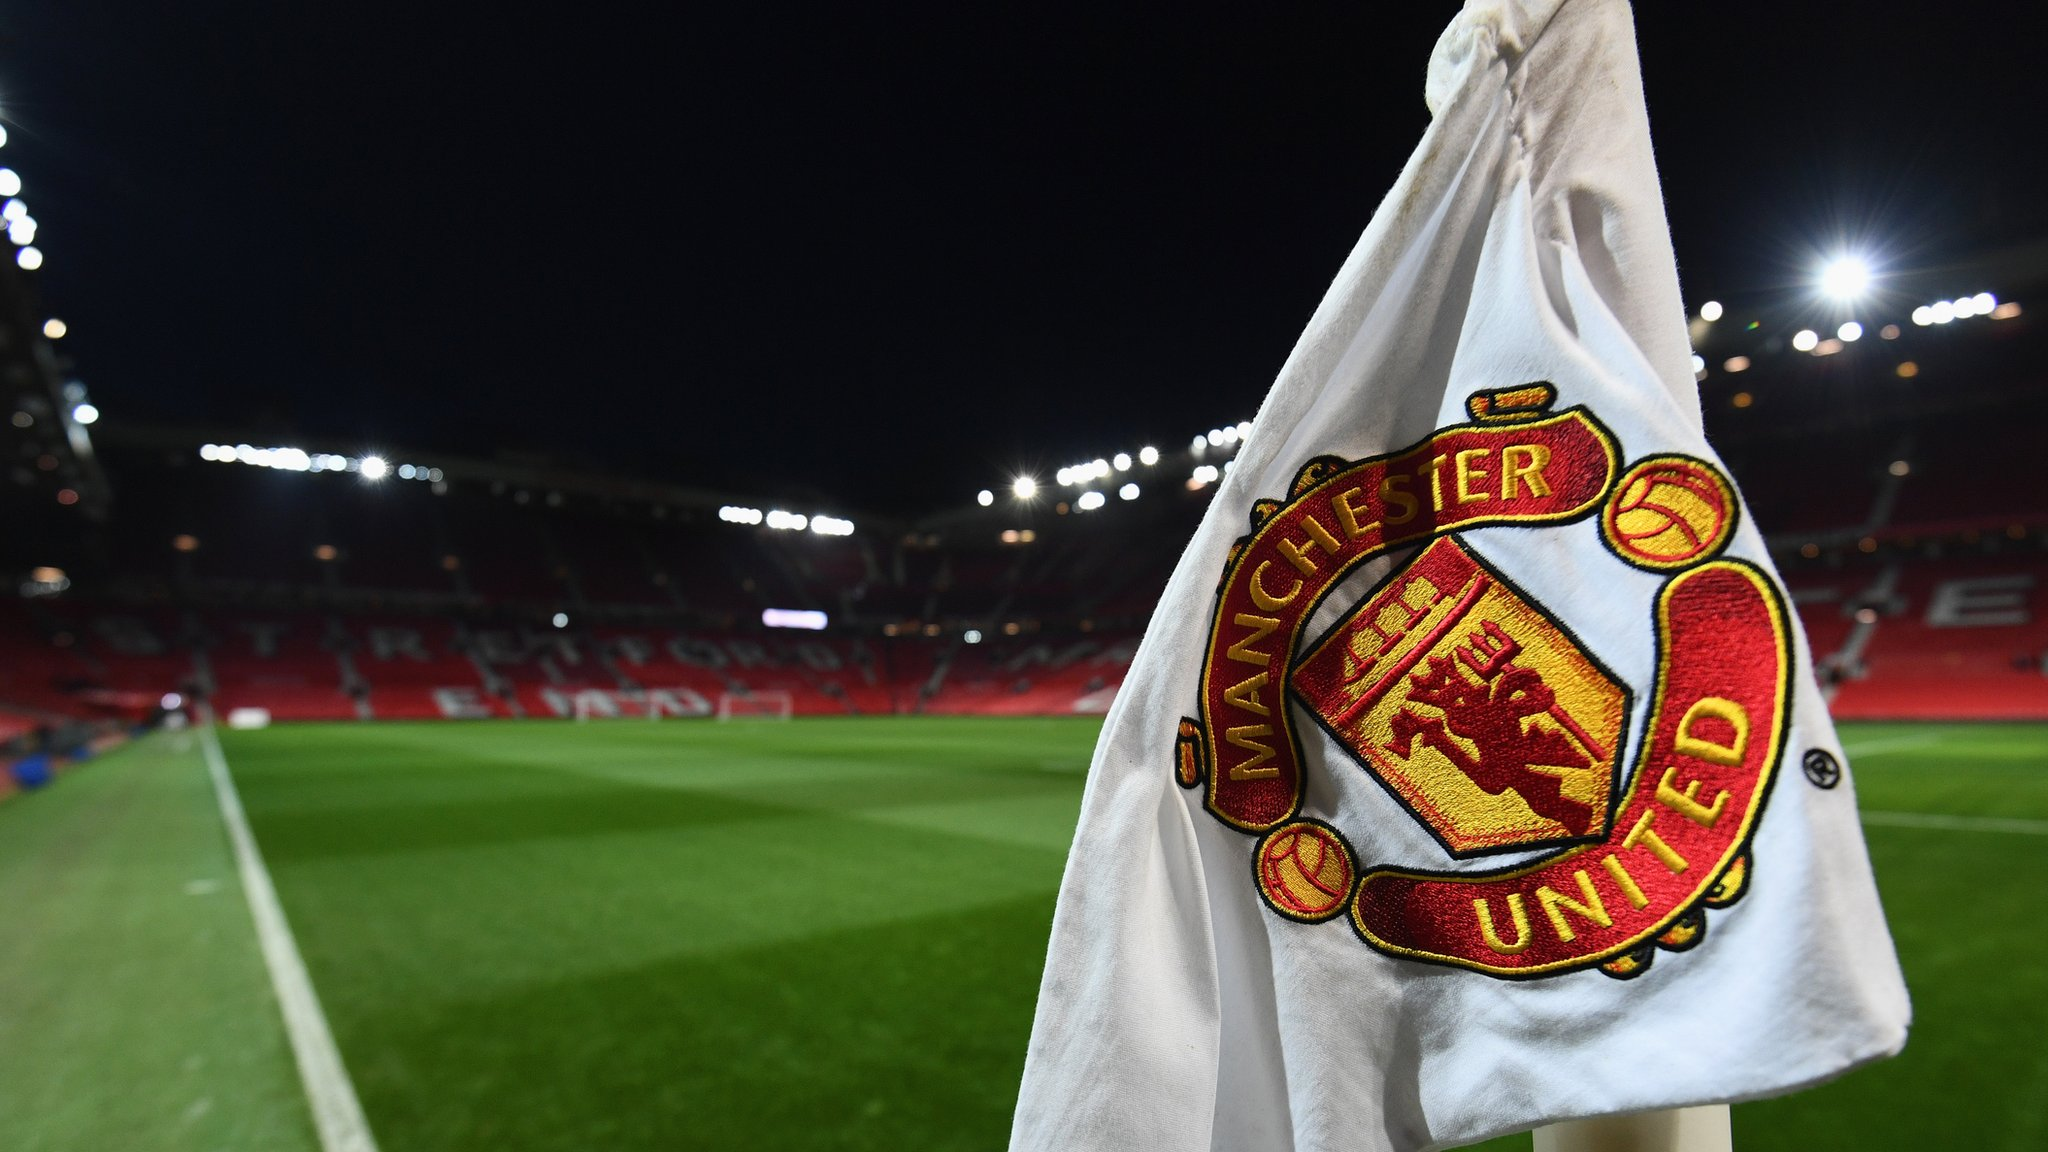 Man Utd set to appoint club's first female chief operating officer